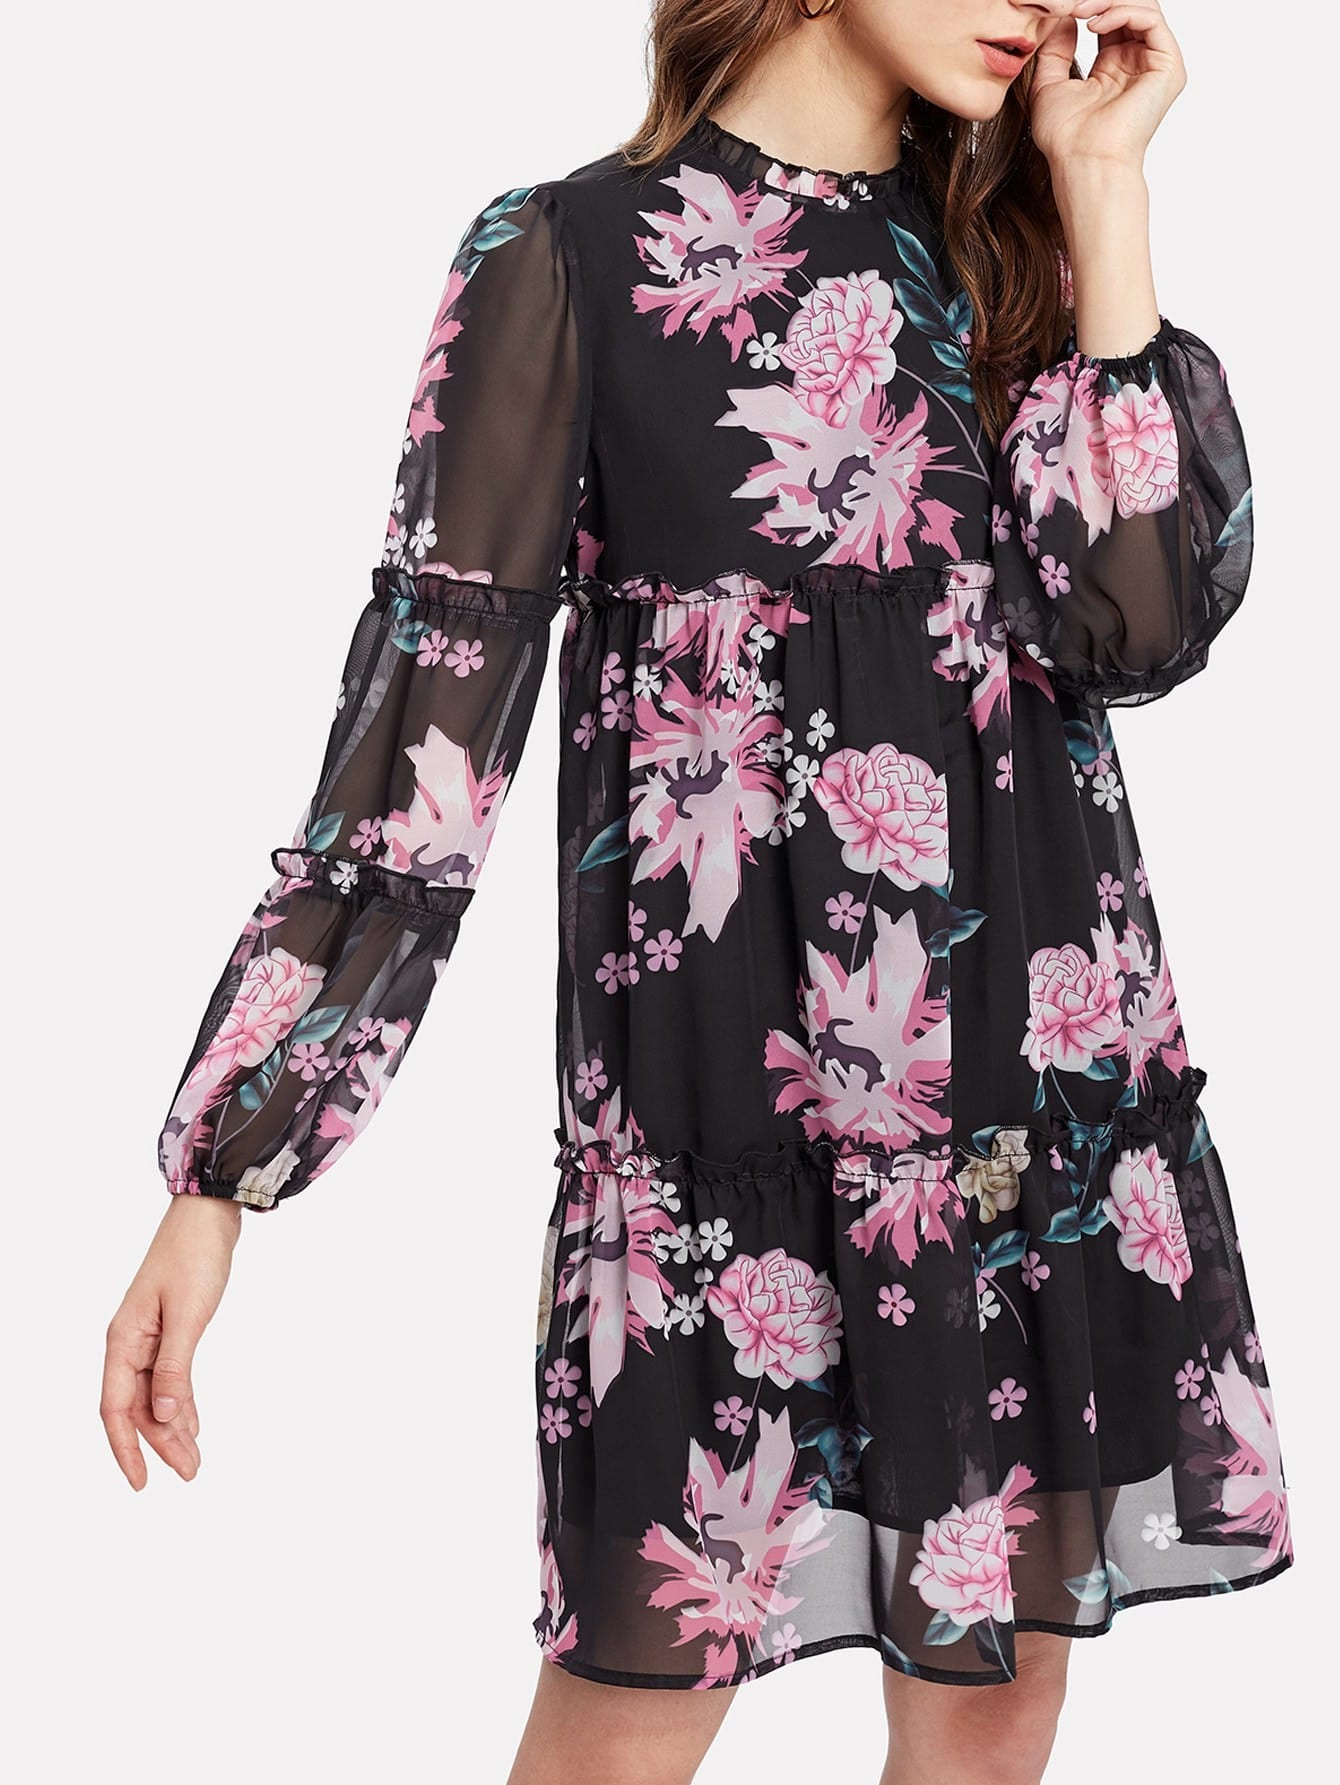 Bishop Sleeve Frilled Detail Floral Dress